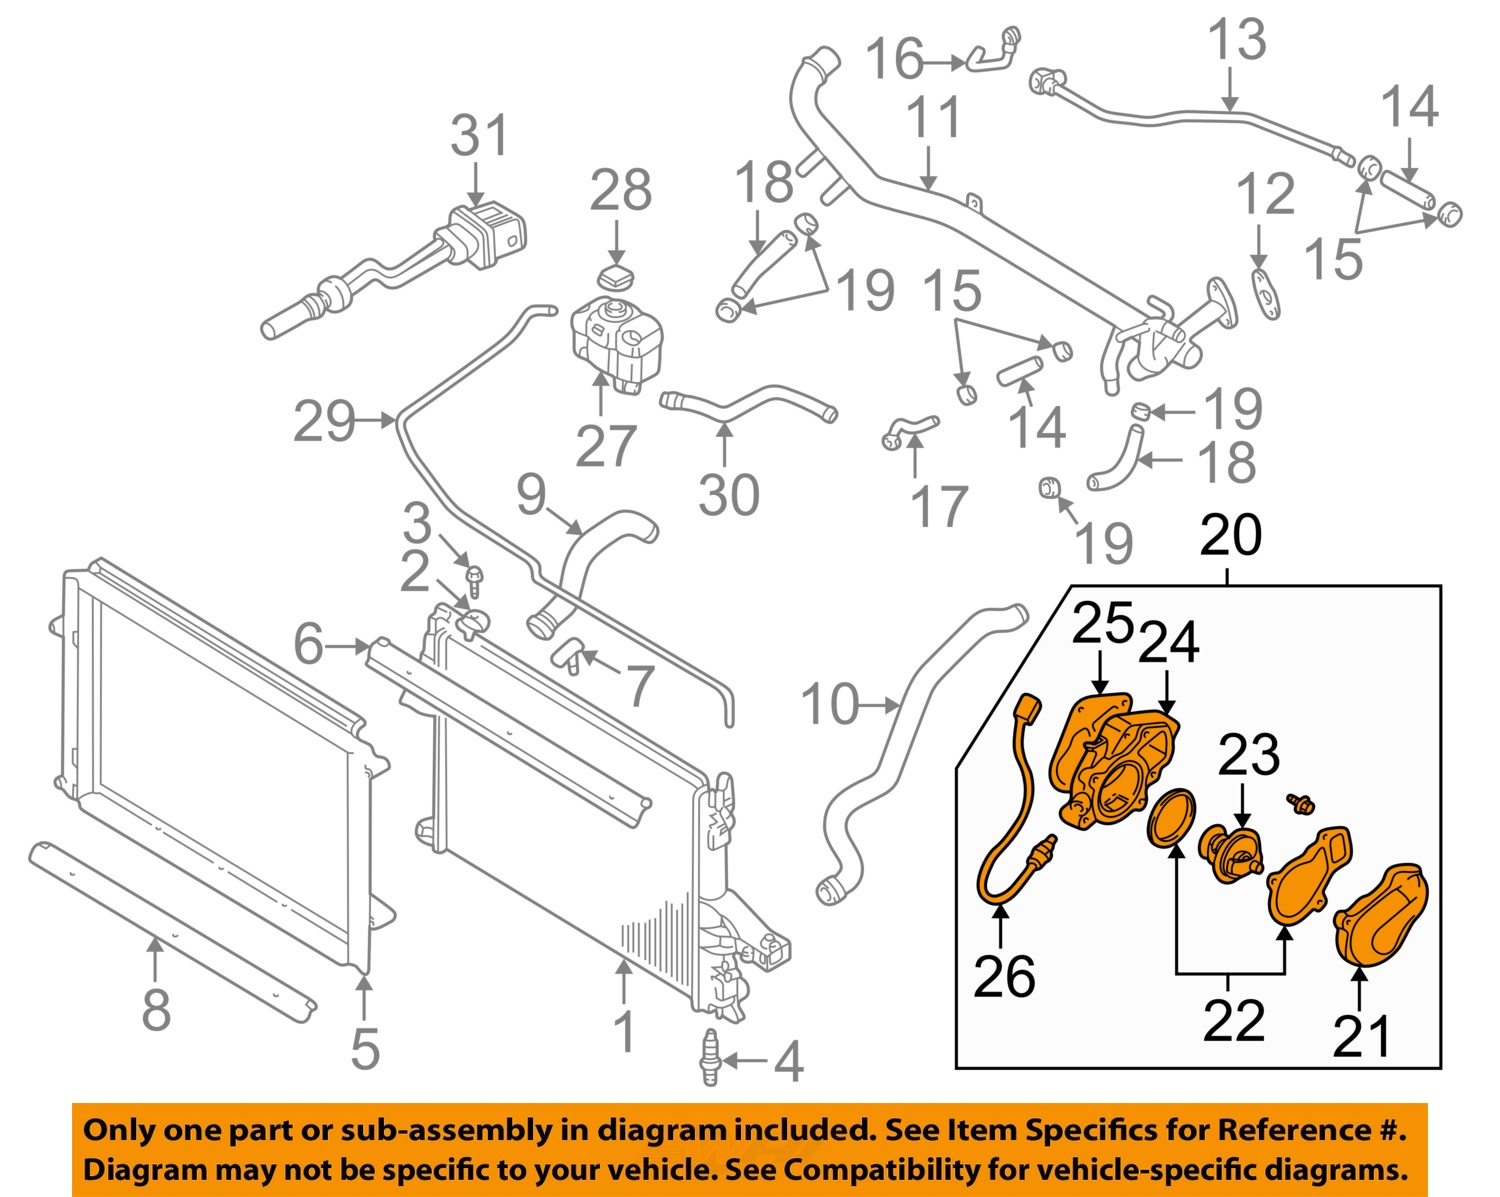 hight resolution of 08 volvo xc90 alternator diagram wiring diagram for light switch u2022 2004 volvo xc90 fuse